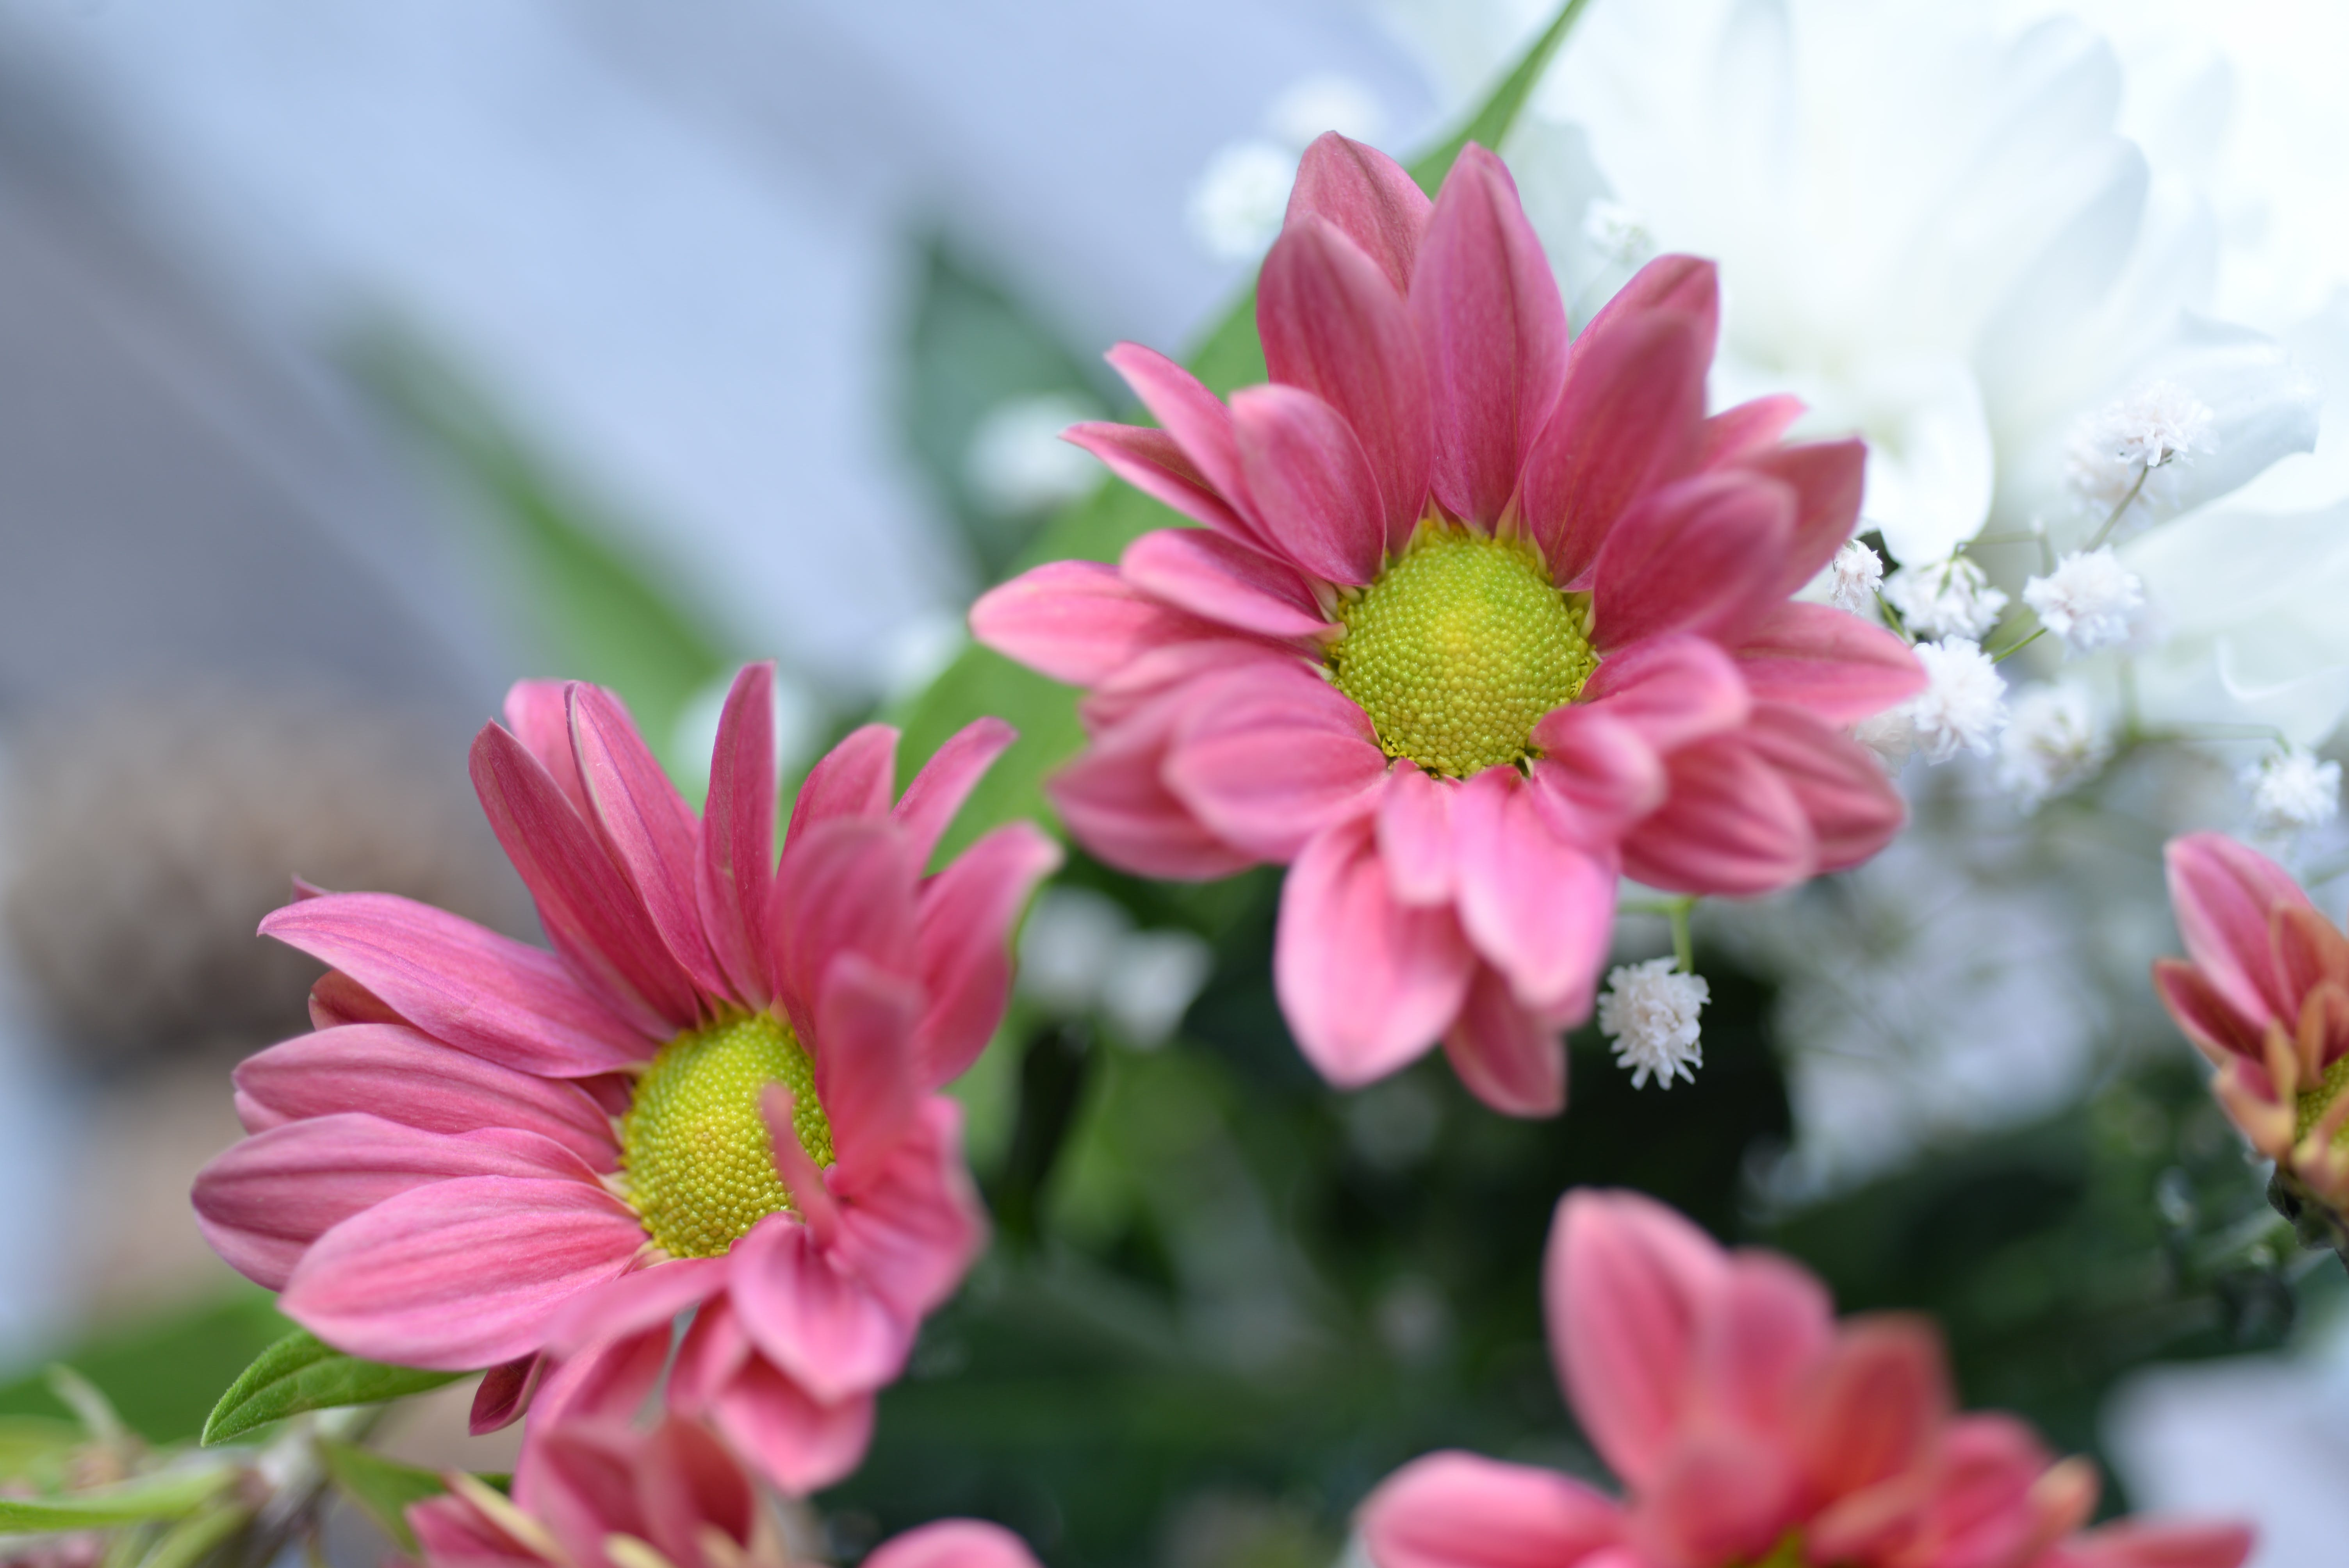 Close-up Photo of Pink Gazania Flower